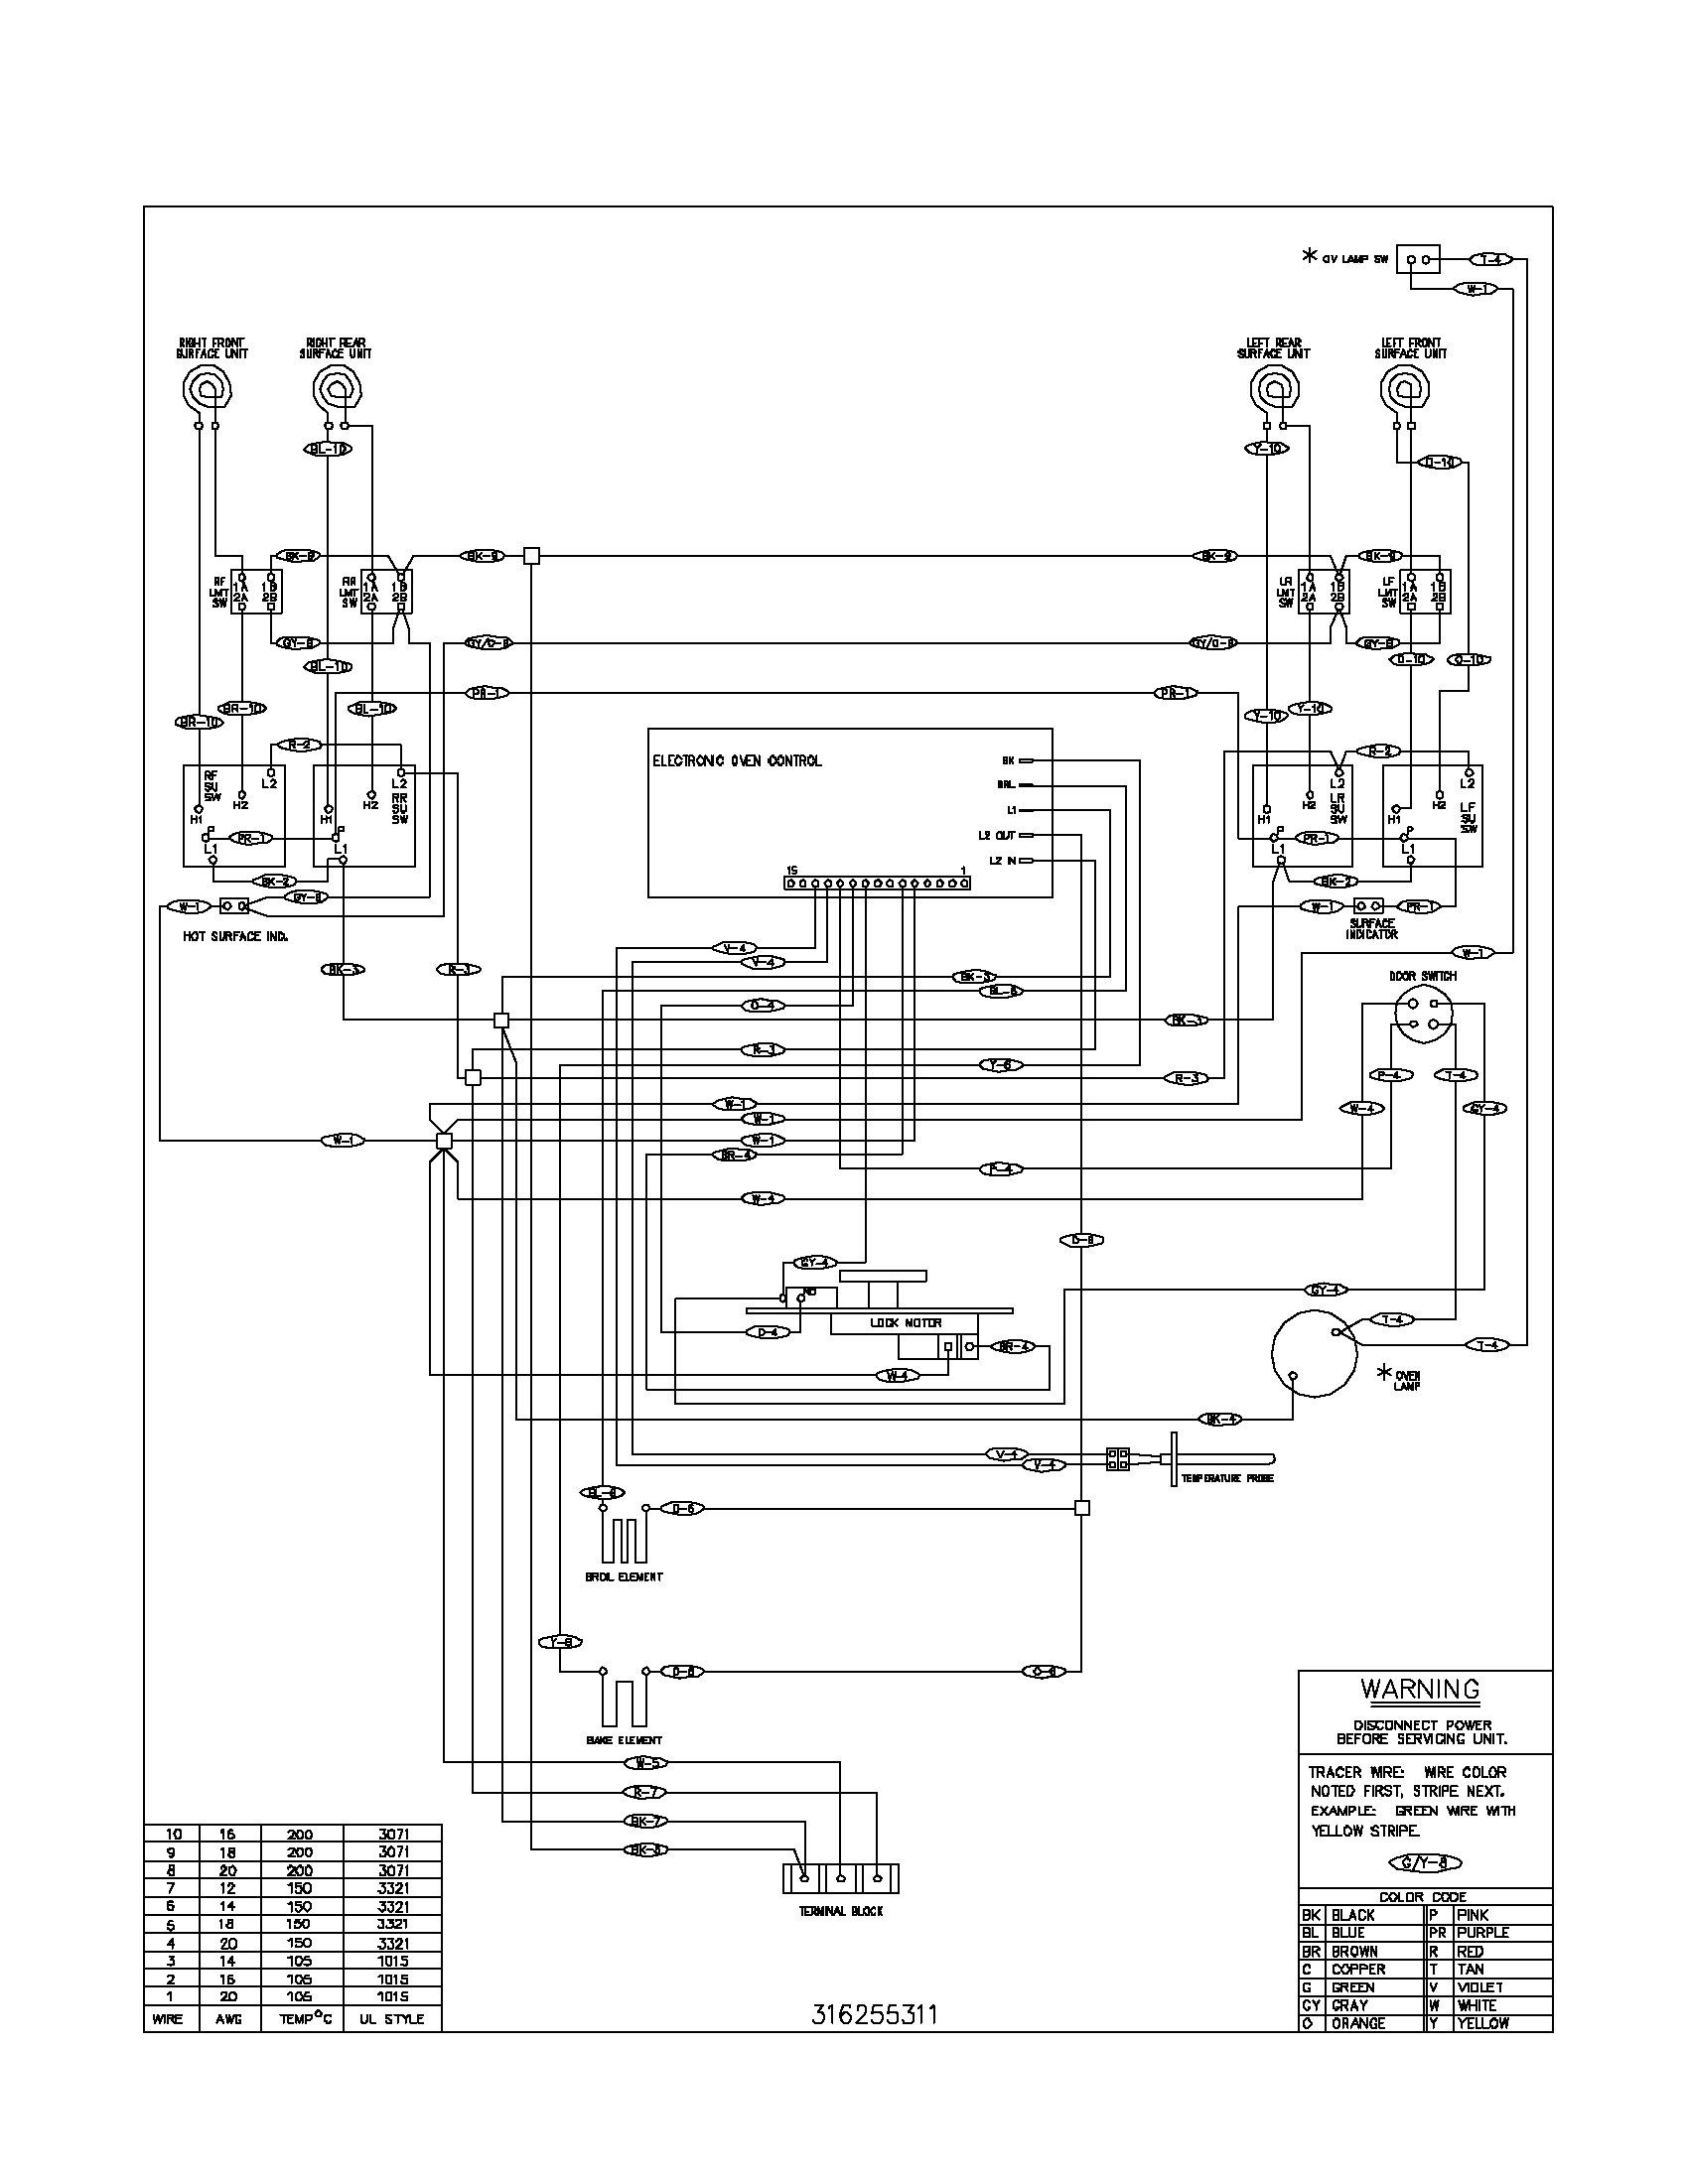 In Wall Timer Wiring Diagram